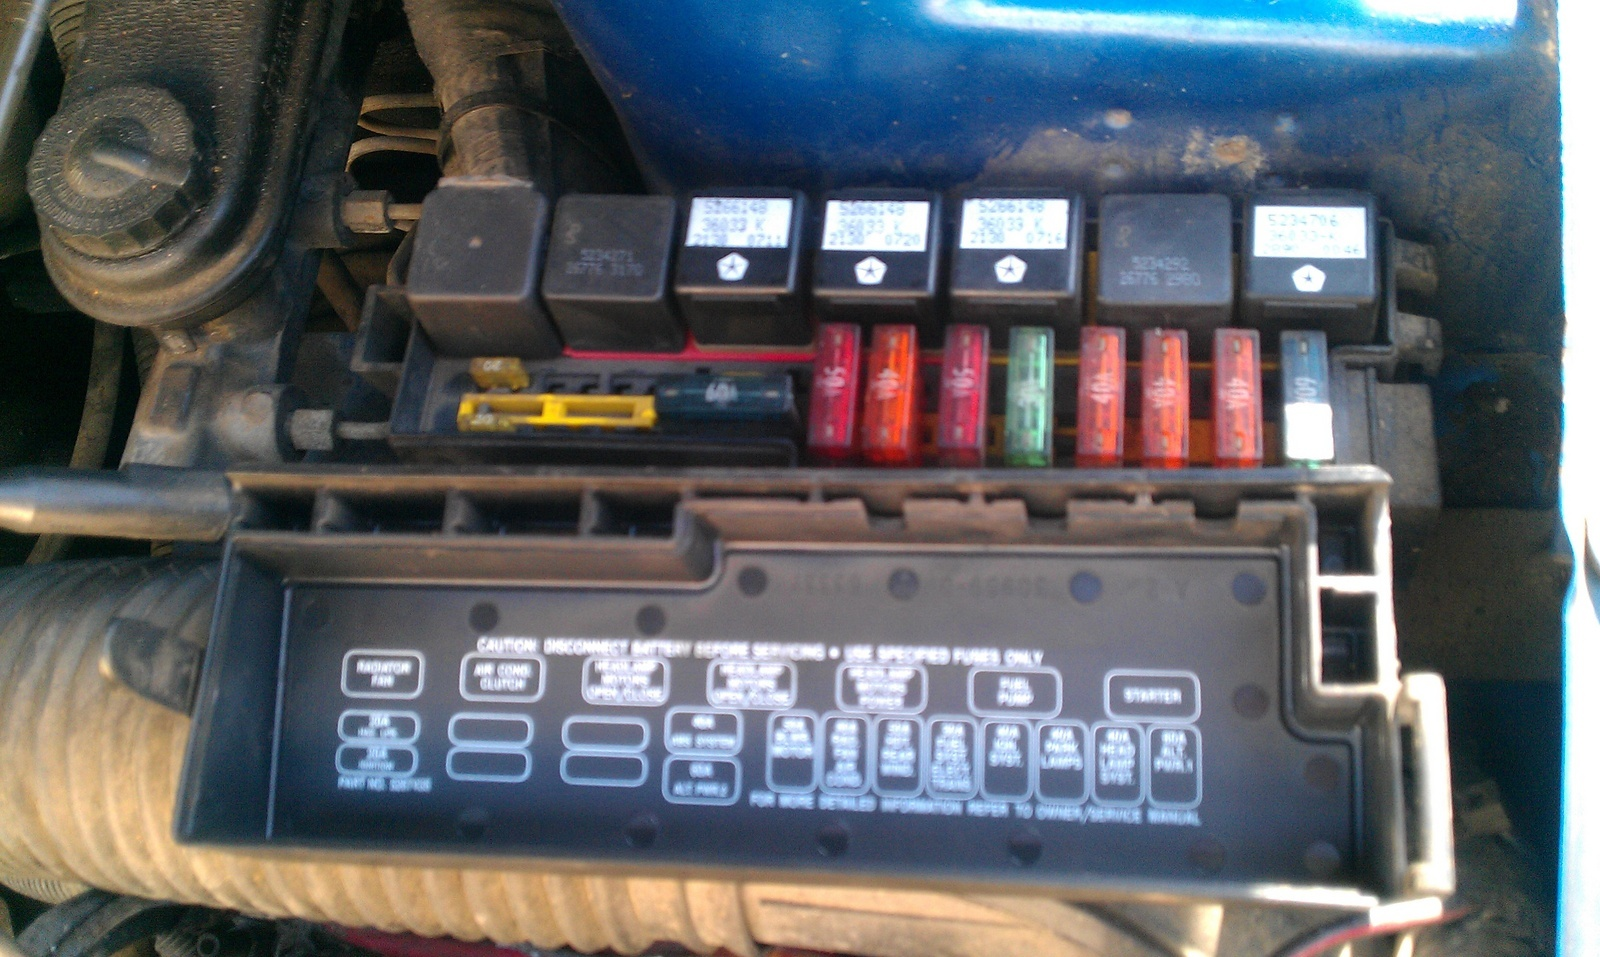 hight resolution of  1998 lexus gs300 fuse box diagram dodge daytona questions my fuel pump stays on after i turn the car off what